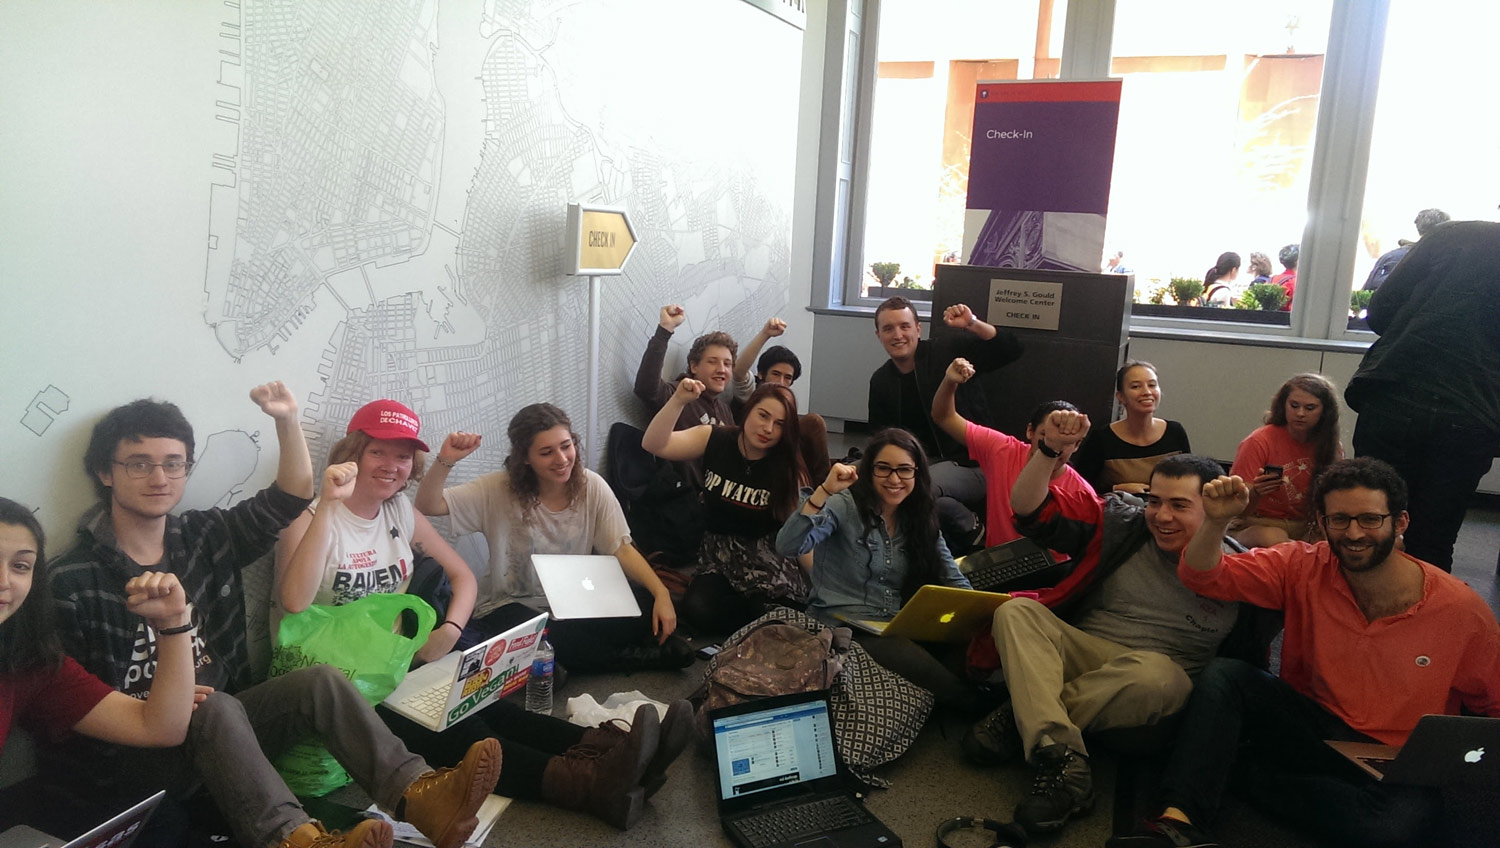 NYU-Just-Dropped-Its-Contract-With-JanSport—Why-Is-That-a-Victory-for-Global-Labor-Rights